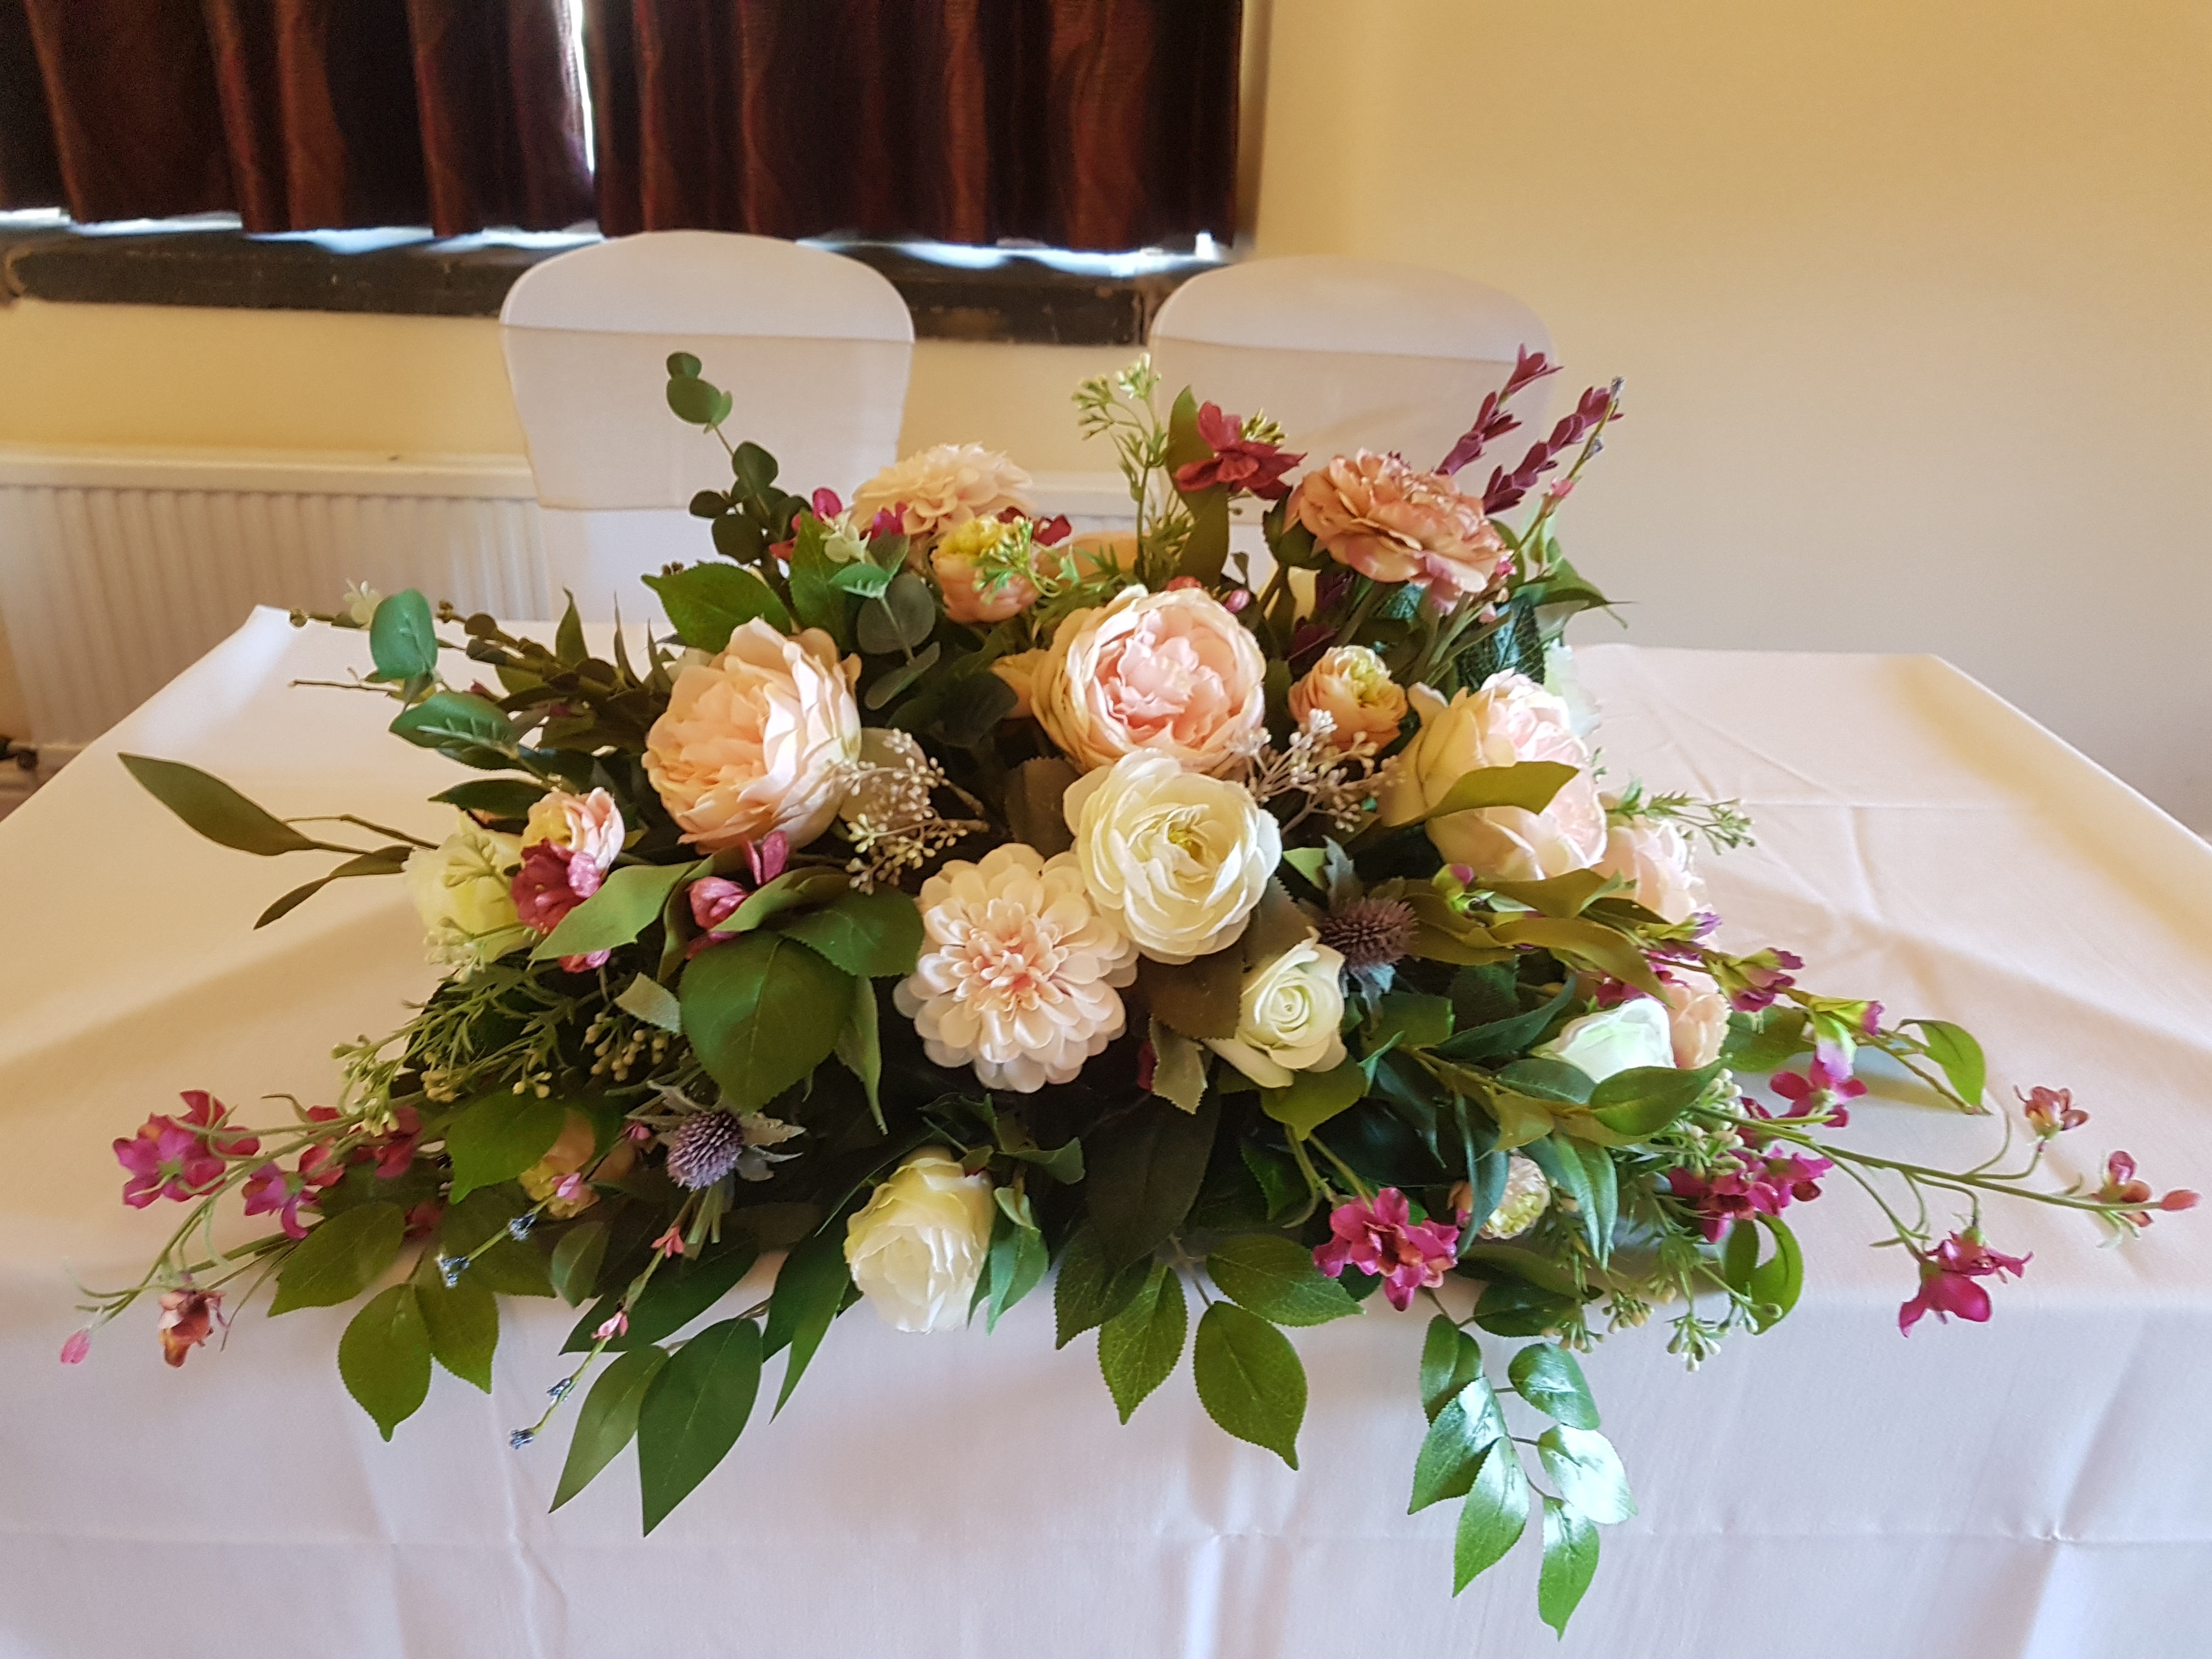 Artificial wild flower table decoration